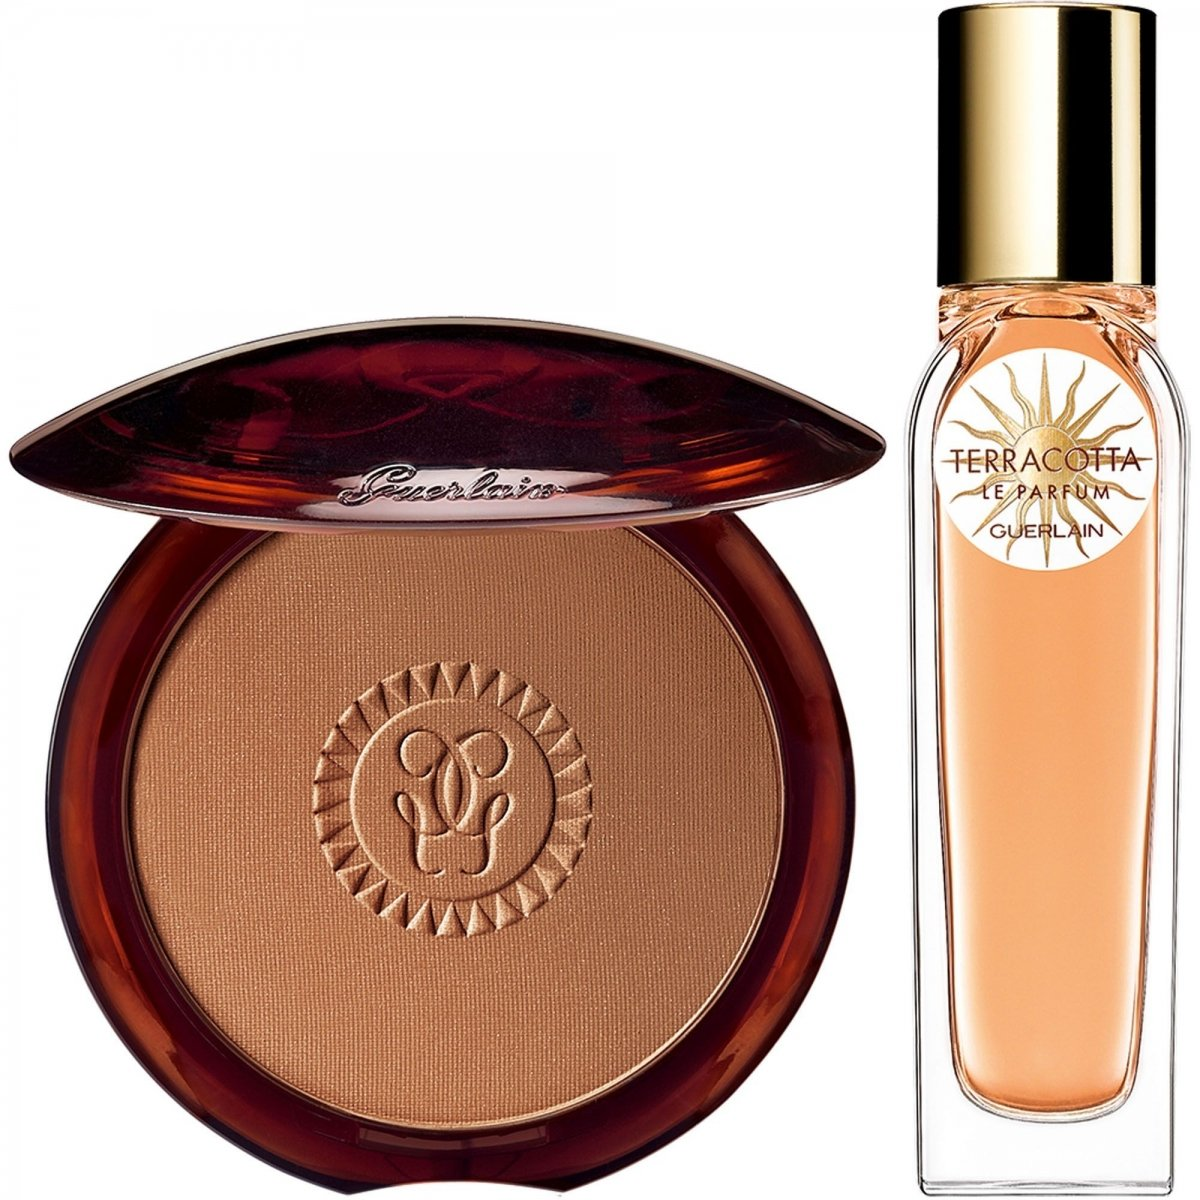 Guerlain Terracotta Le Parfum Reviews And Rating